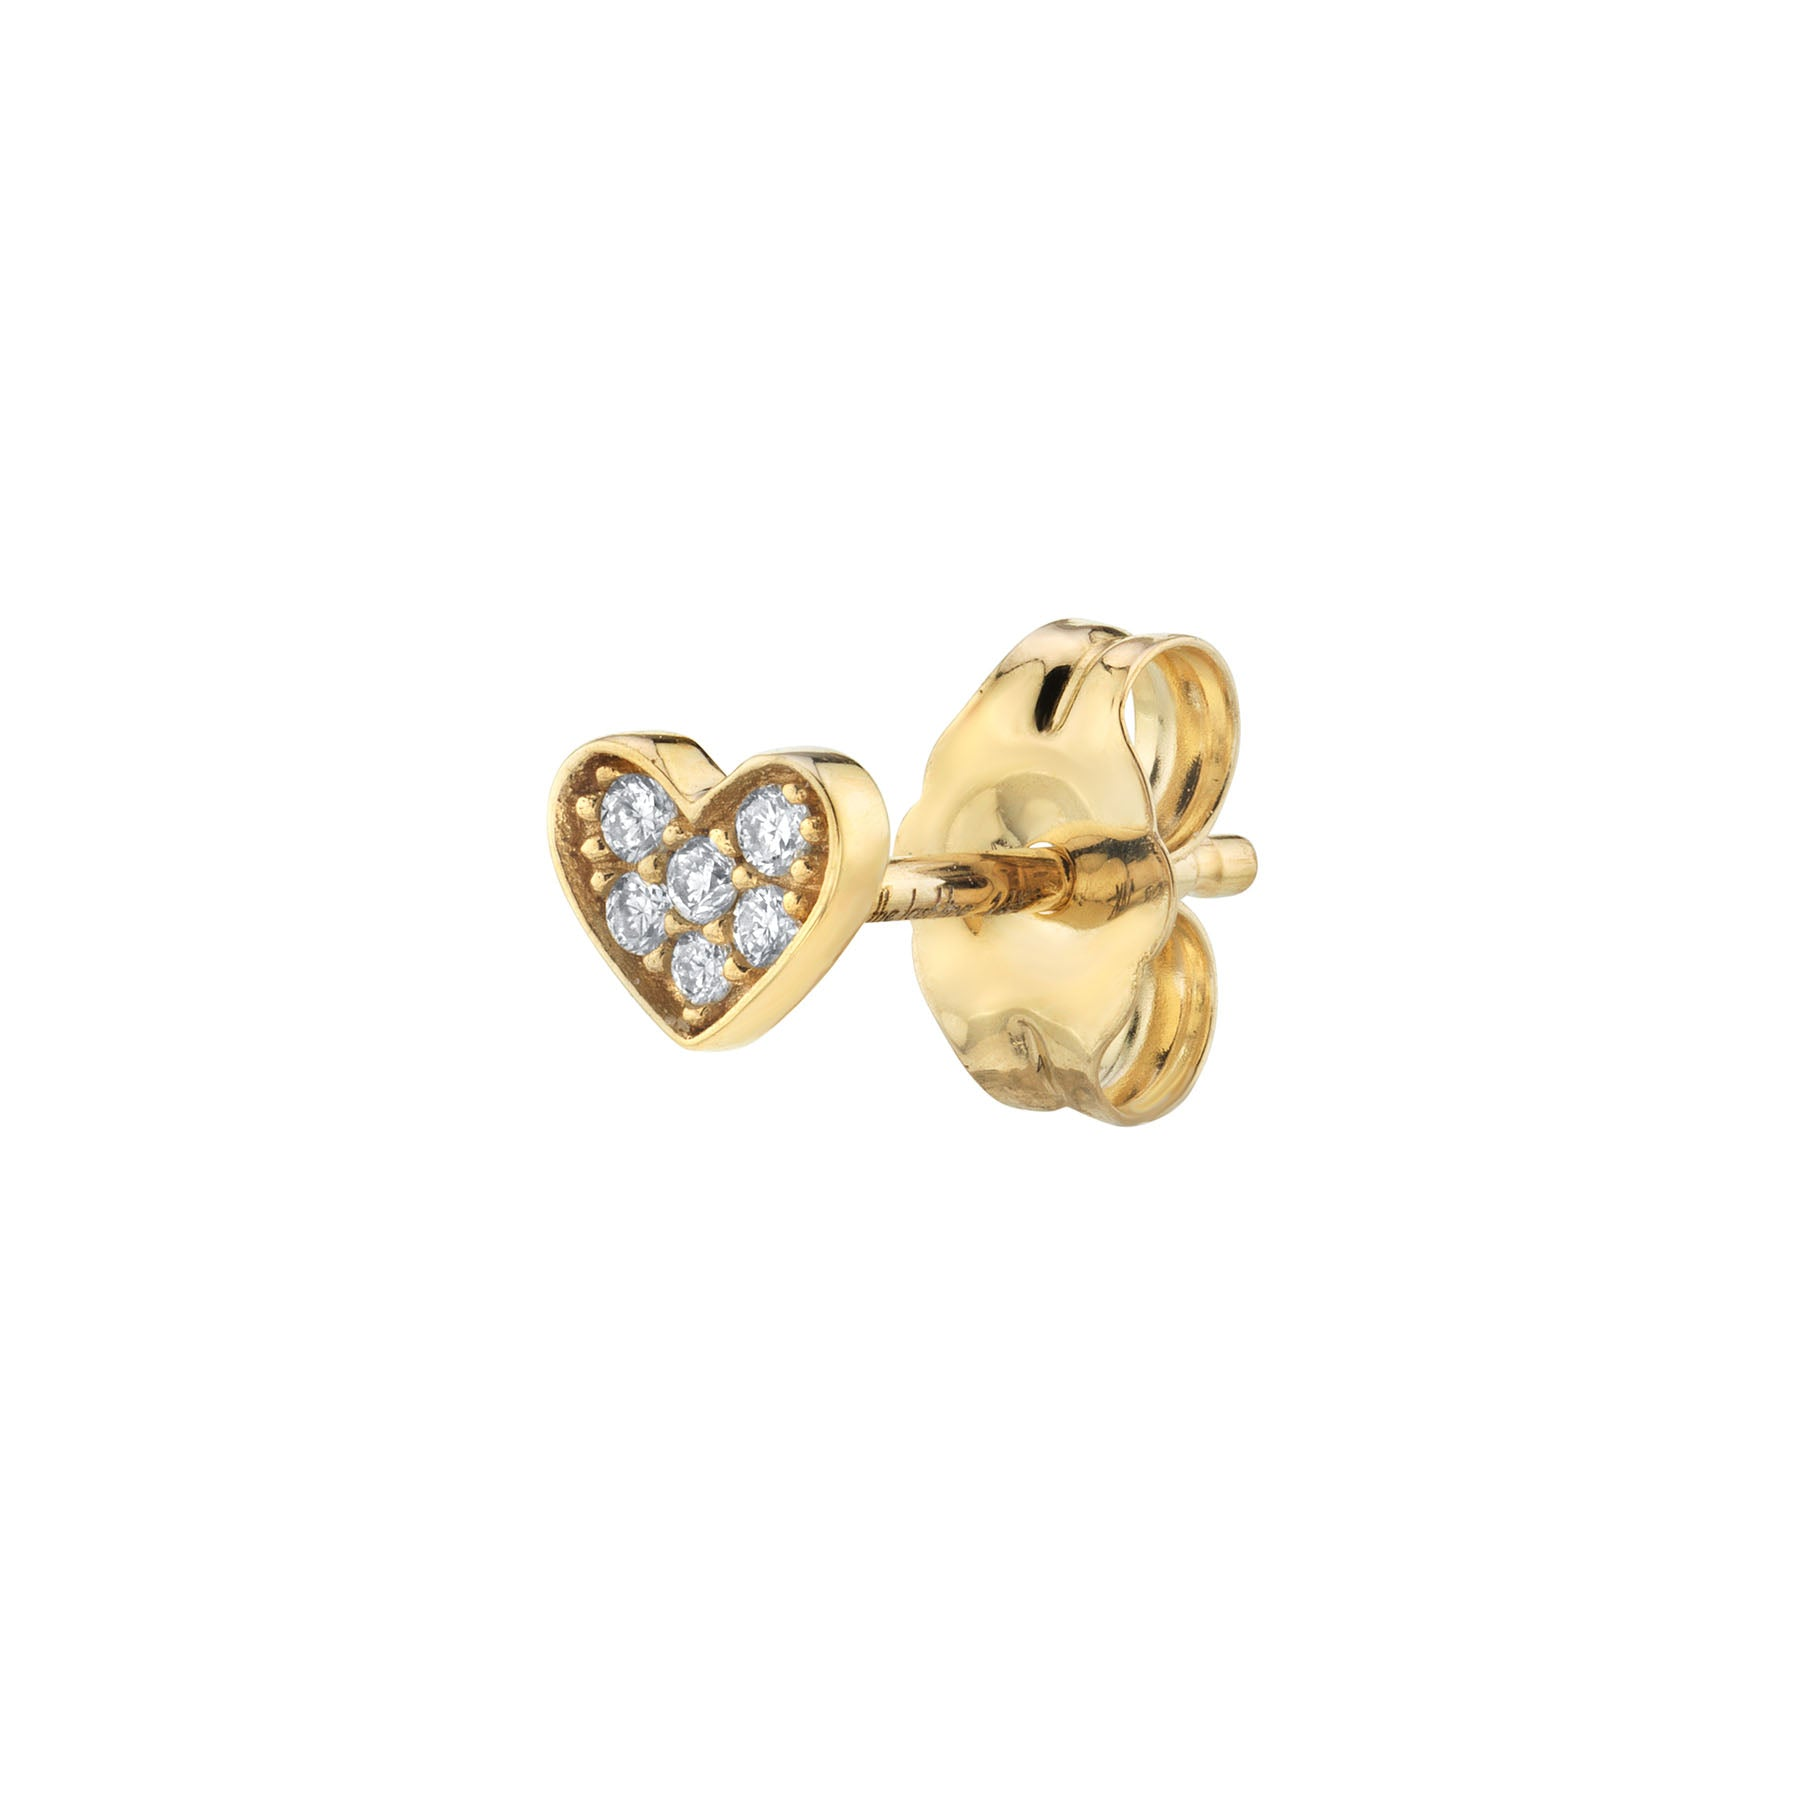 DIAMOND PAVÉ HEART STUD